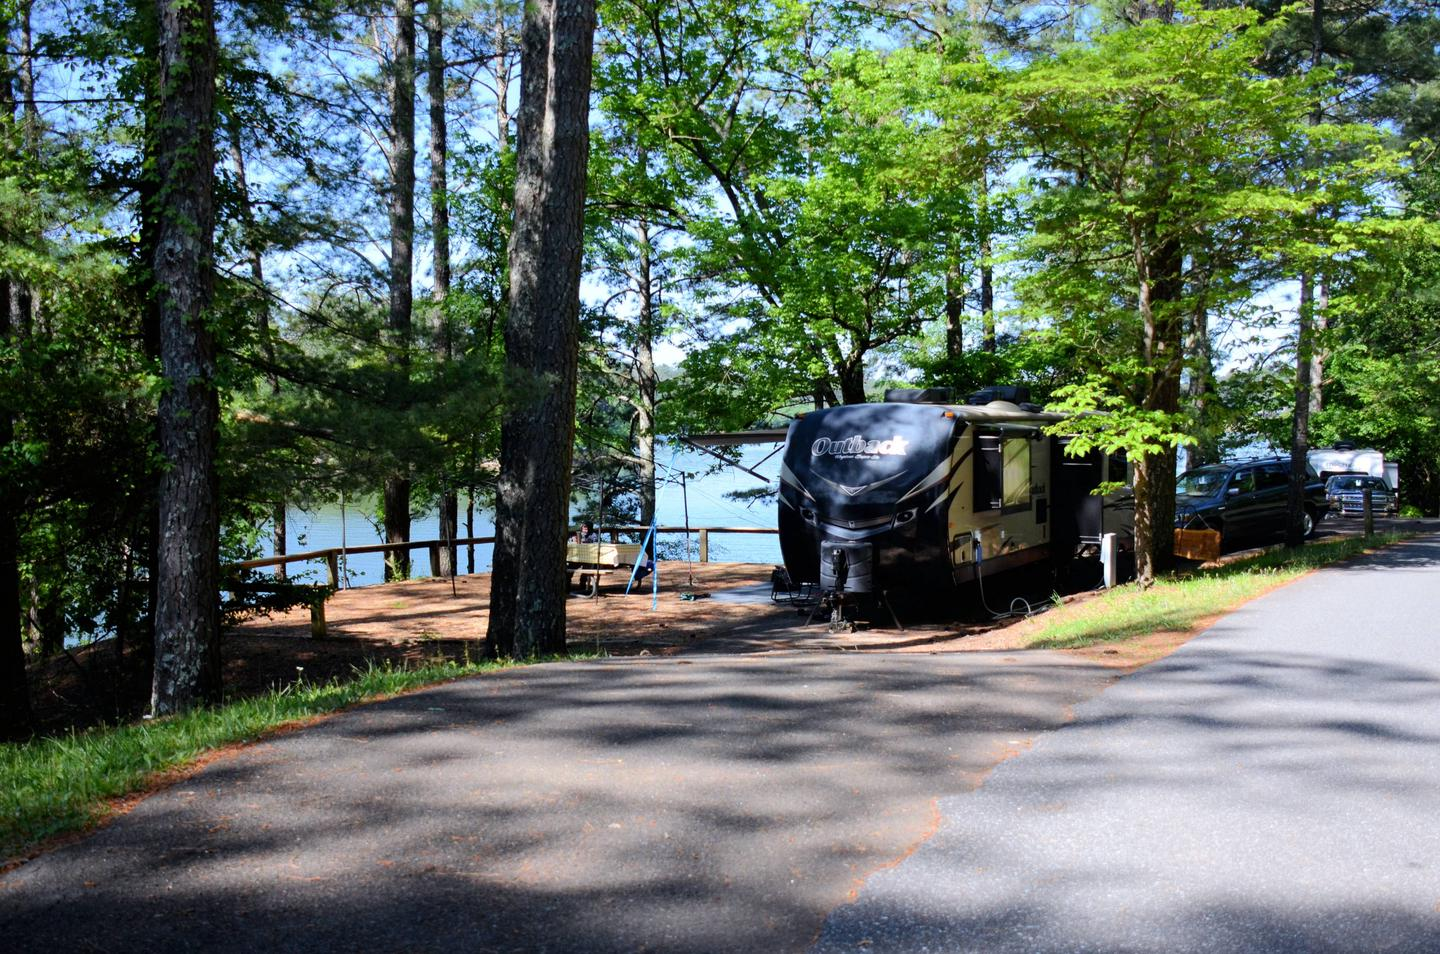 Pull-thru exit, driveway slope, awning-side clearance.McKinney Campground, campsite 52